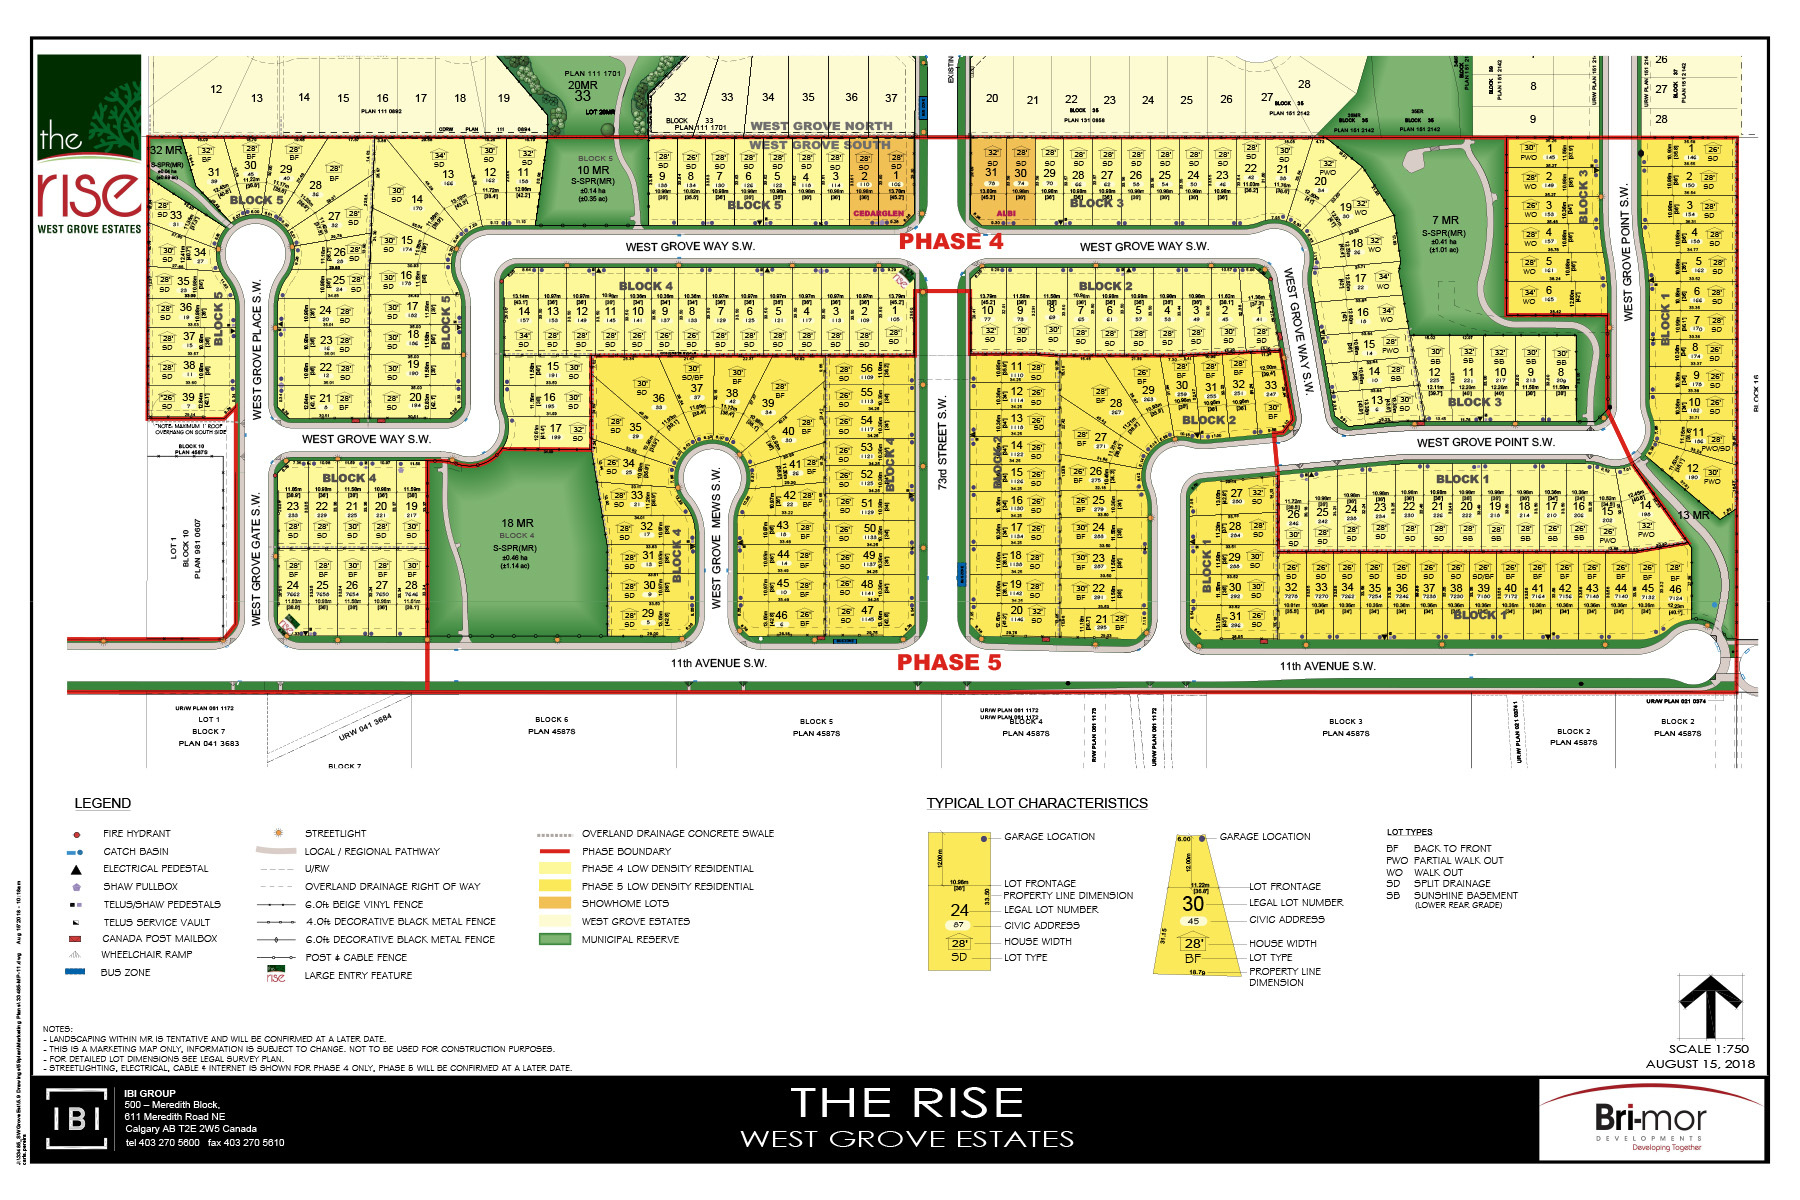 The Rise West Grove Phase Map